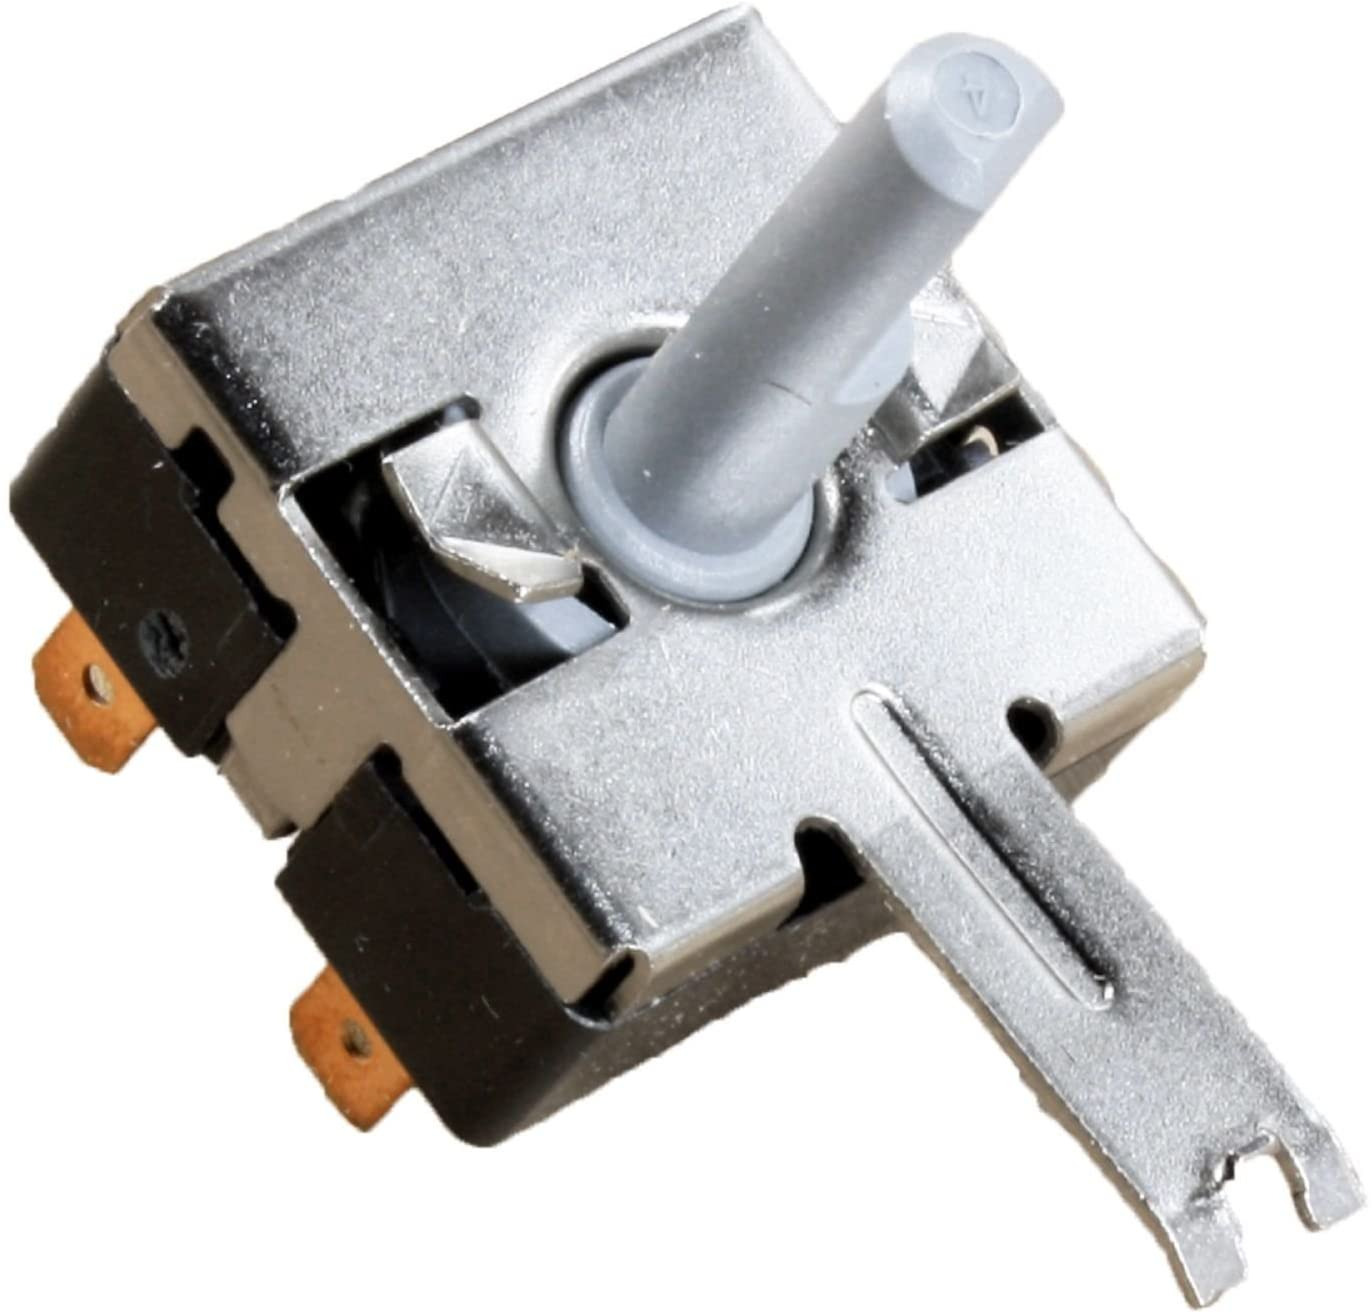 Compatible Rotary Start Switch for Hotpoint HTDP120GD0WW, General Electric DHDSR46GG2WW, General Electric DWSR483EG2WW, General Electric DWXR483EB3WW Dryer